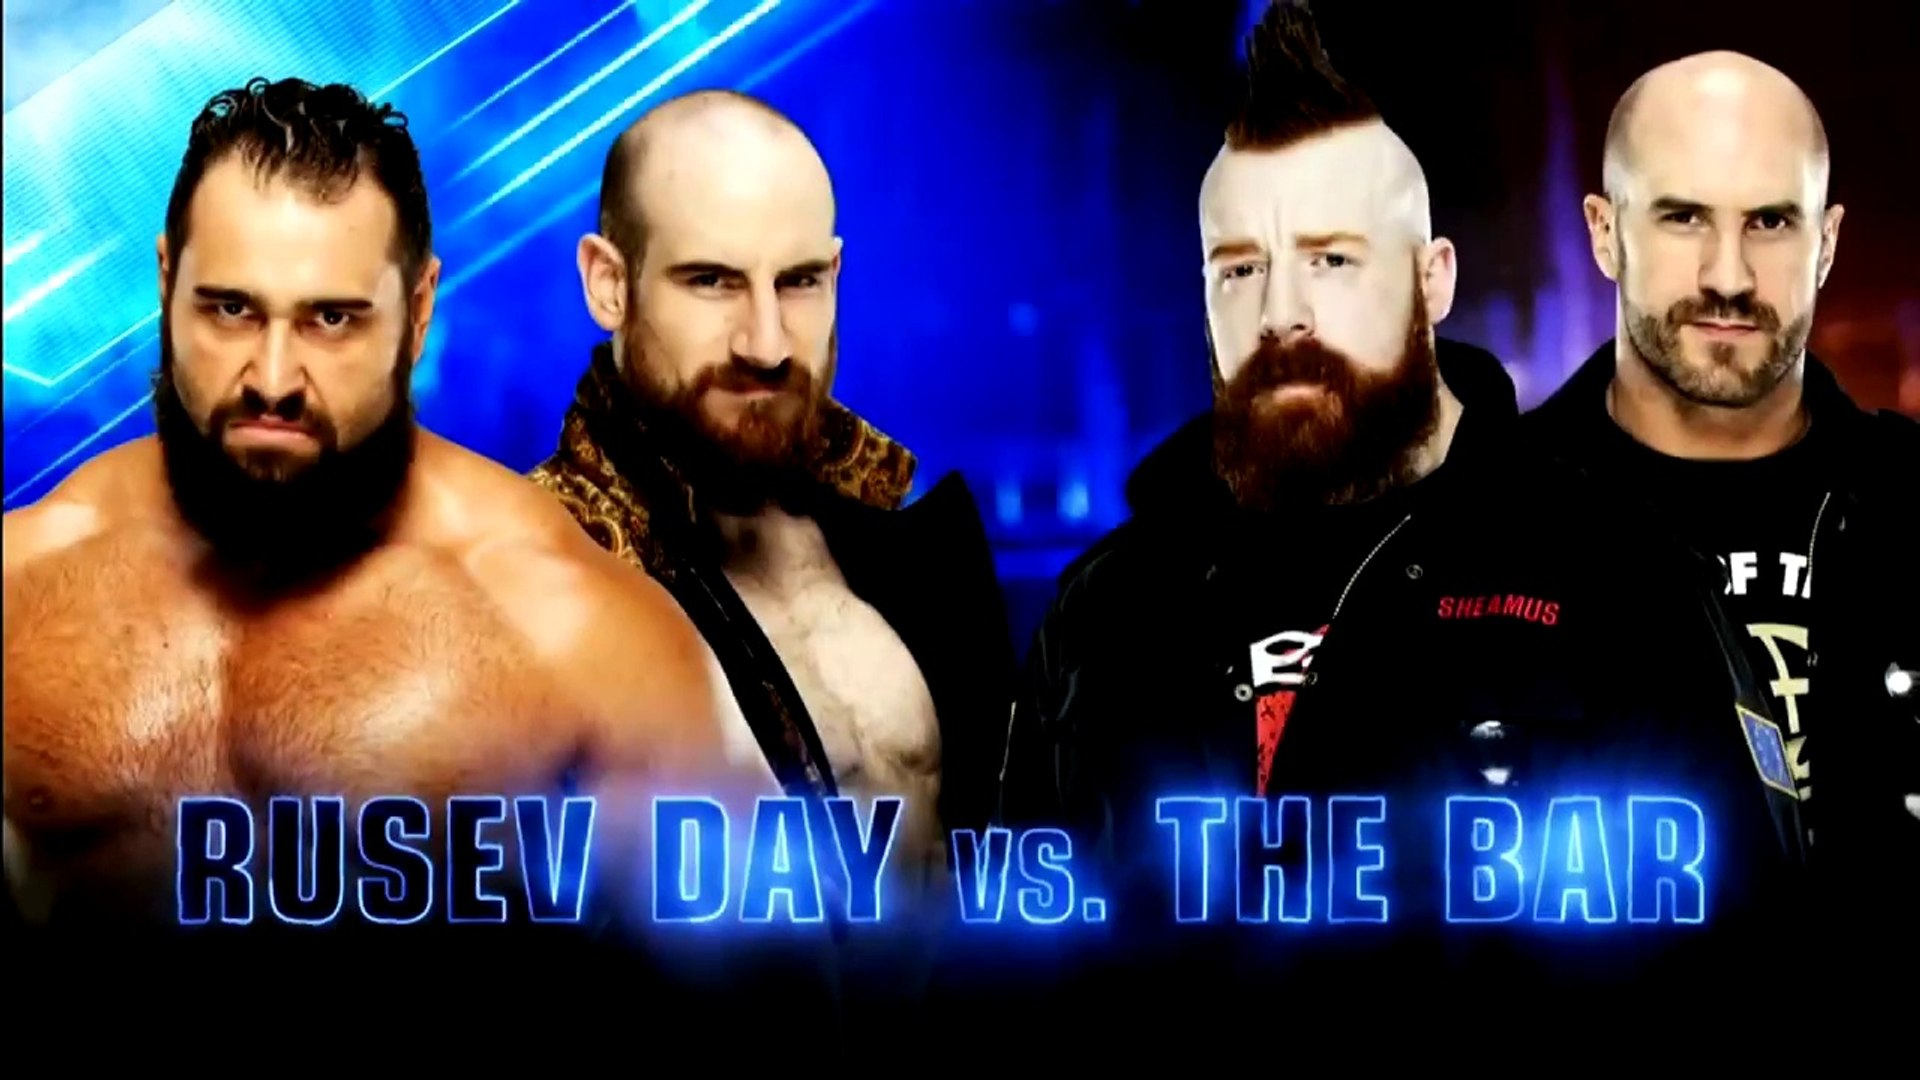 WWE SmackDown LIVE: The Bar vs. Rusev Day - Ganadores enfrentan a The New Day en Hell in a Cell   Es